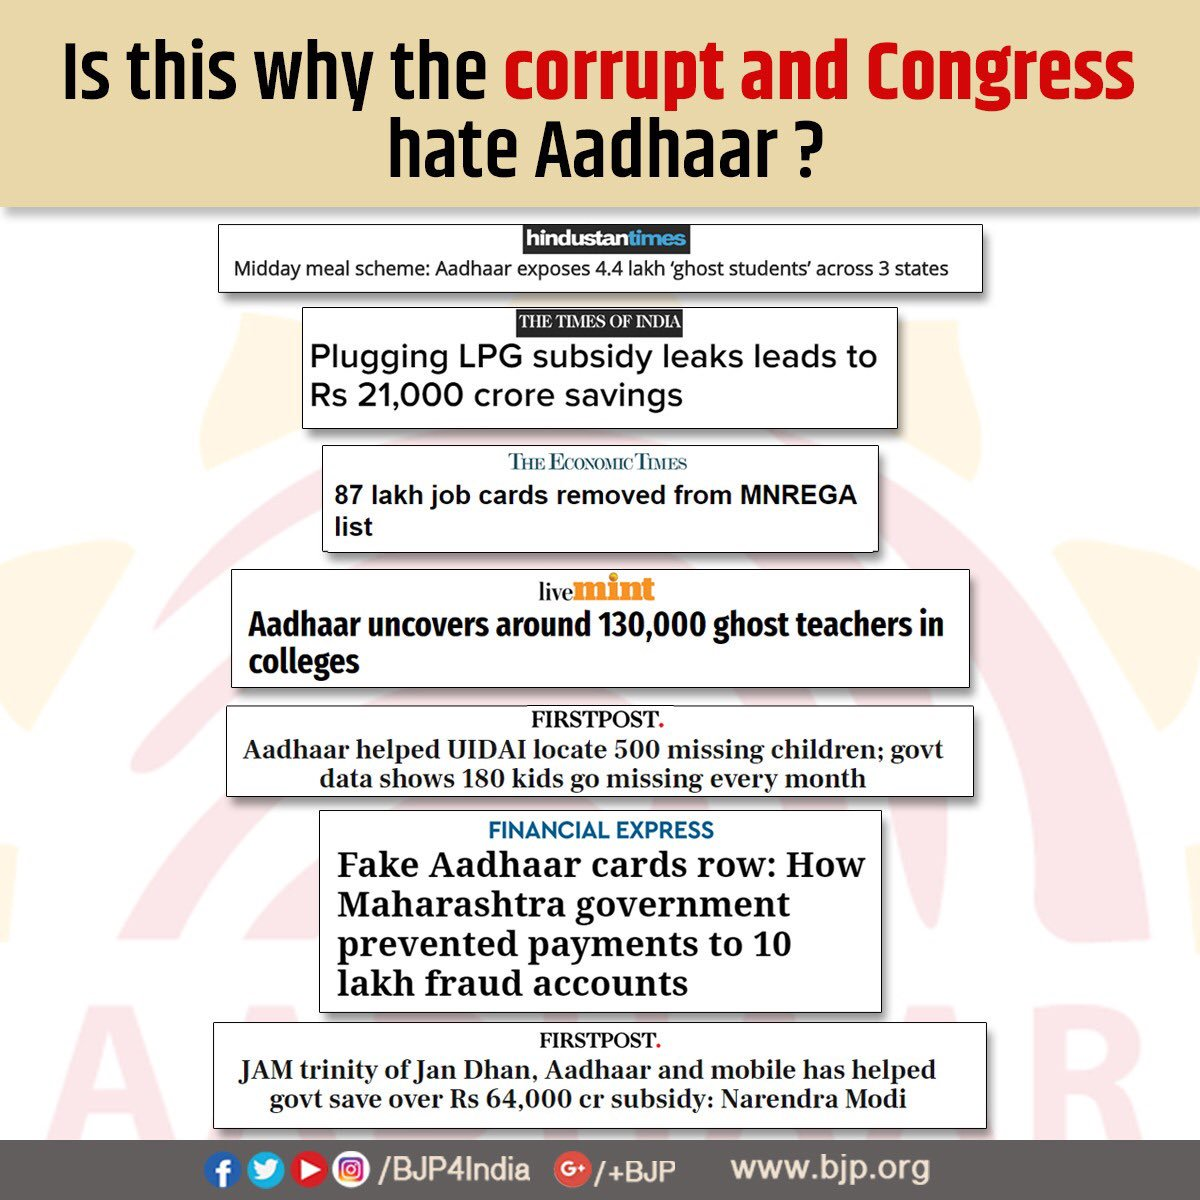 RT @Punitspeaks: Is this the reason congress n corrupt hate Aadhar #AadhaarMythBuster https://t.co/ZsFQYfM5DI